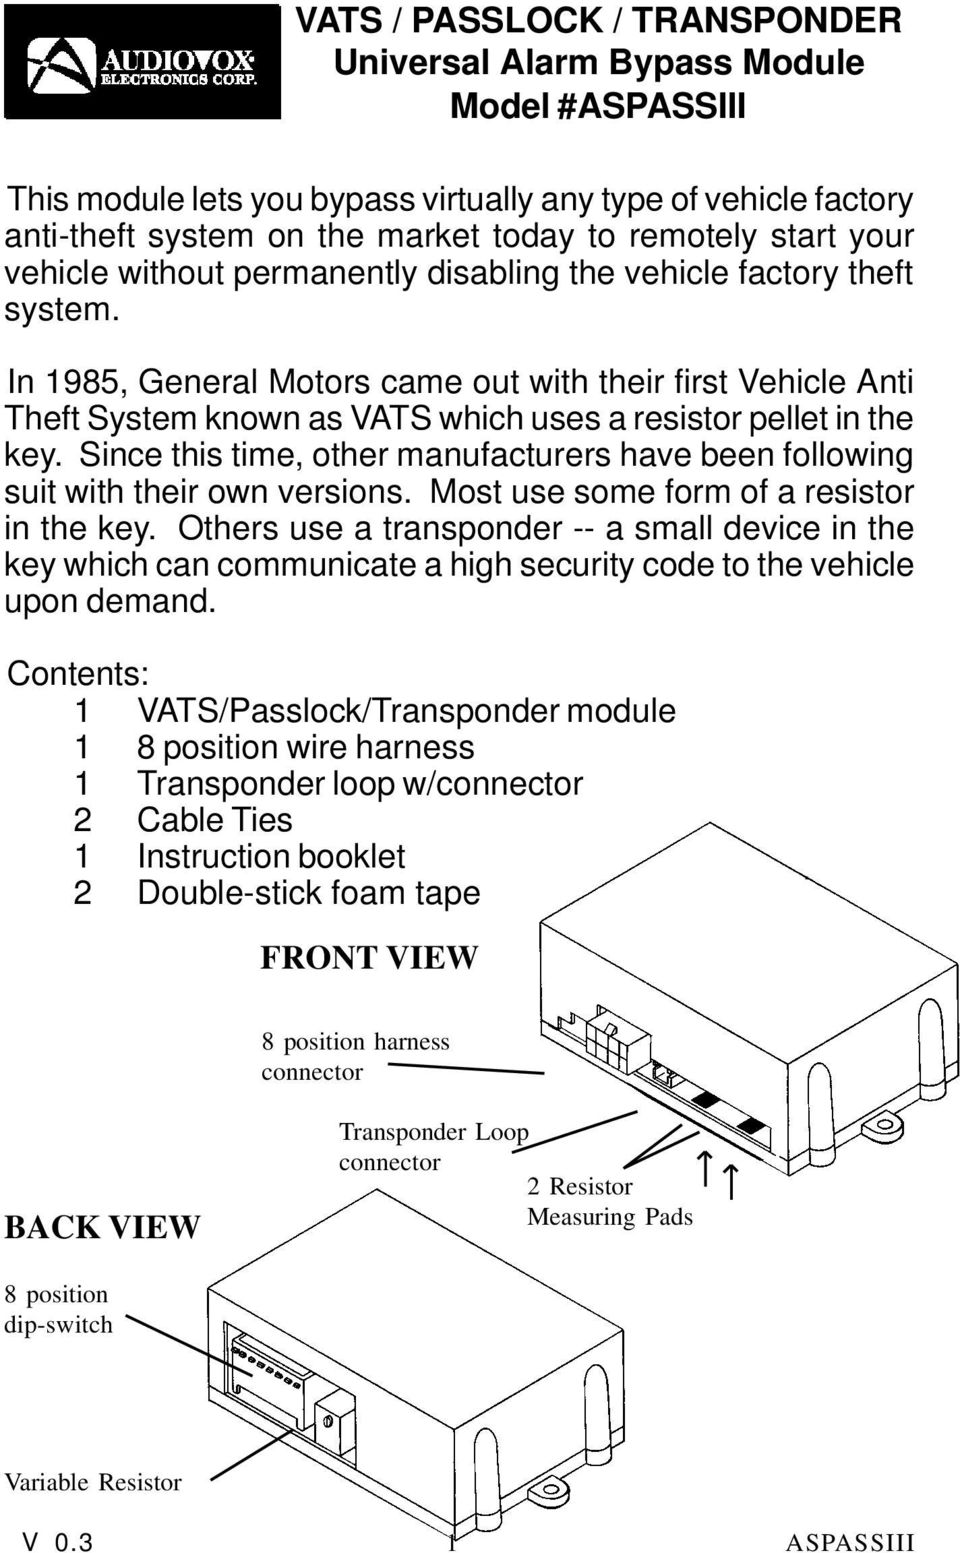 Vats Passlock Transponder Universal Alarm Bypass Module Model 97 Buick Lesabre Wiring Diagram Since This Time Other Manufacturers Have Been Following Suit With Their Own Versions Most